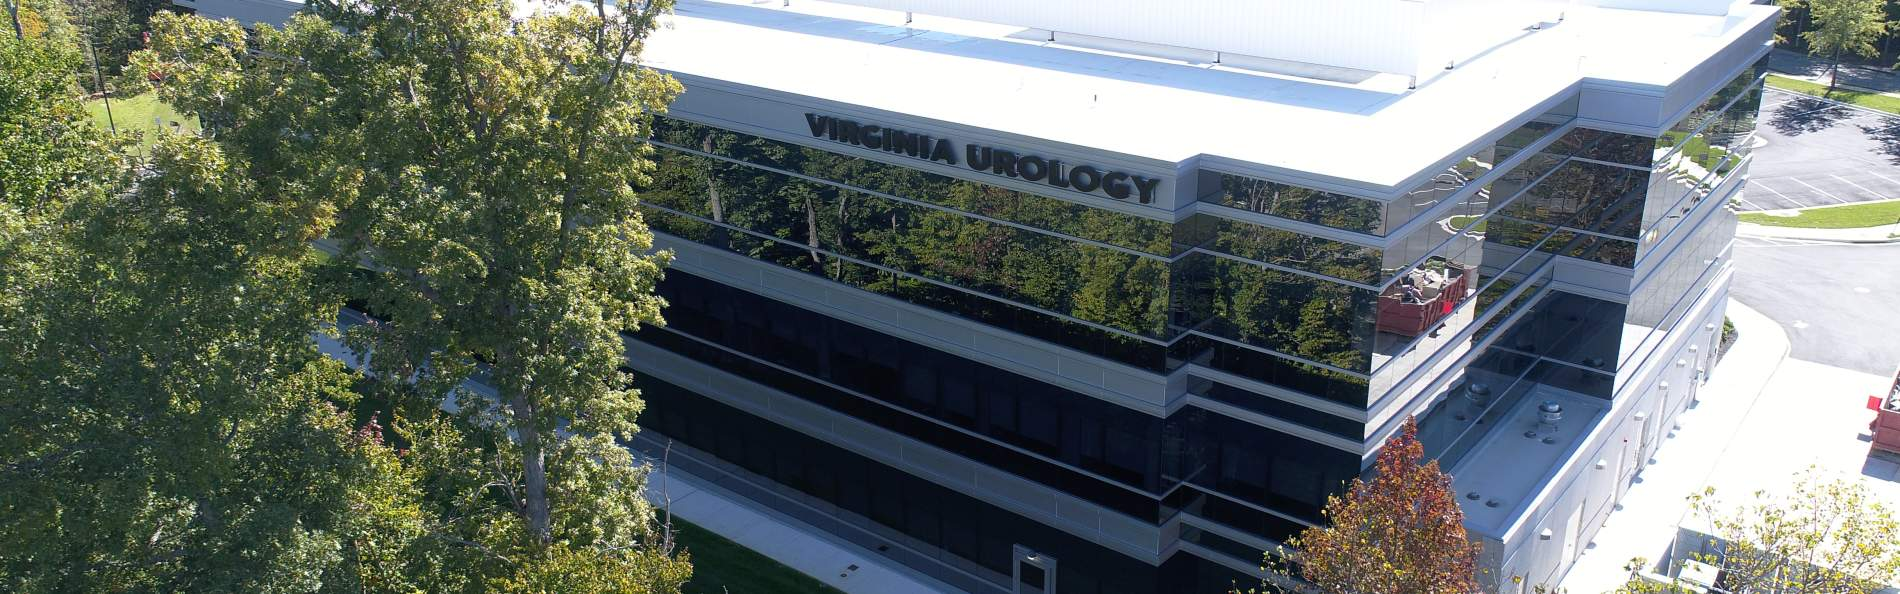 Side/upper view of the newly built Virginia Urology.